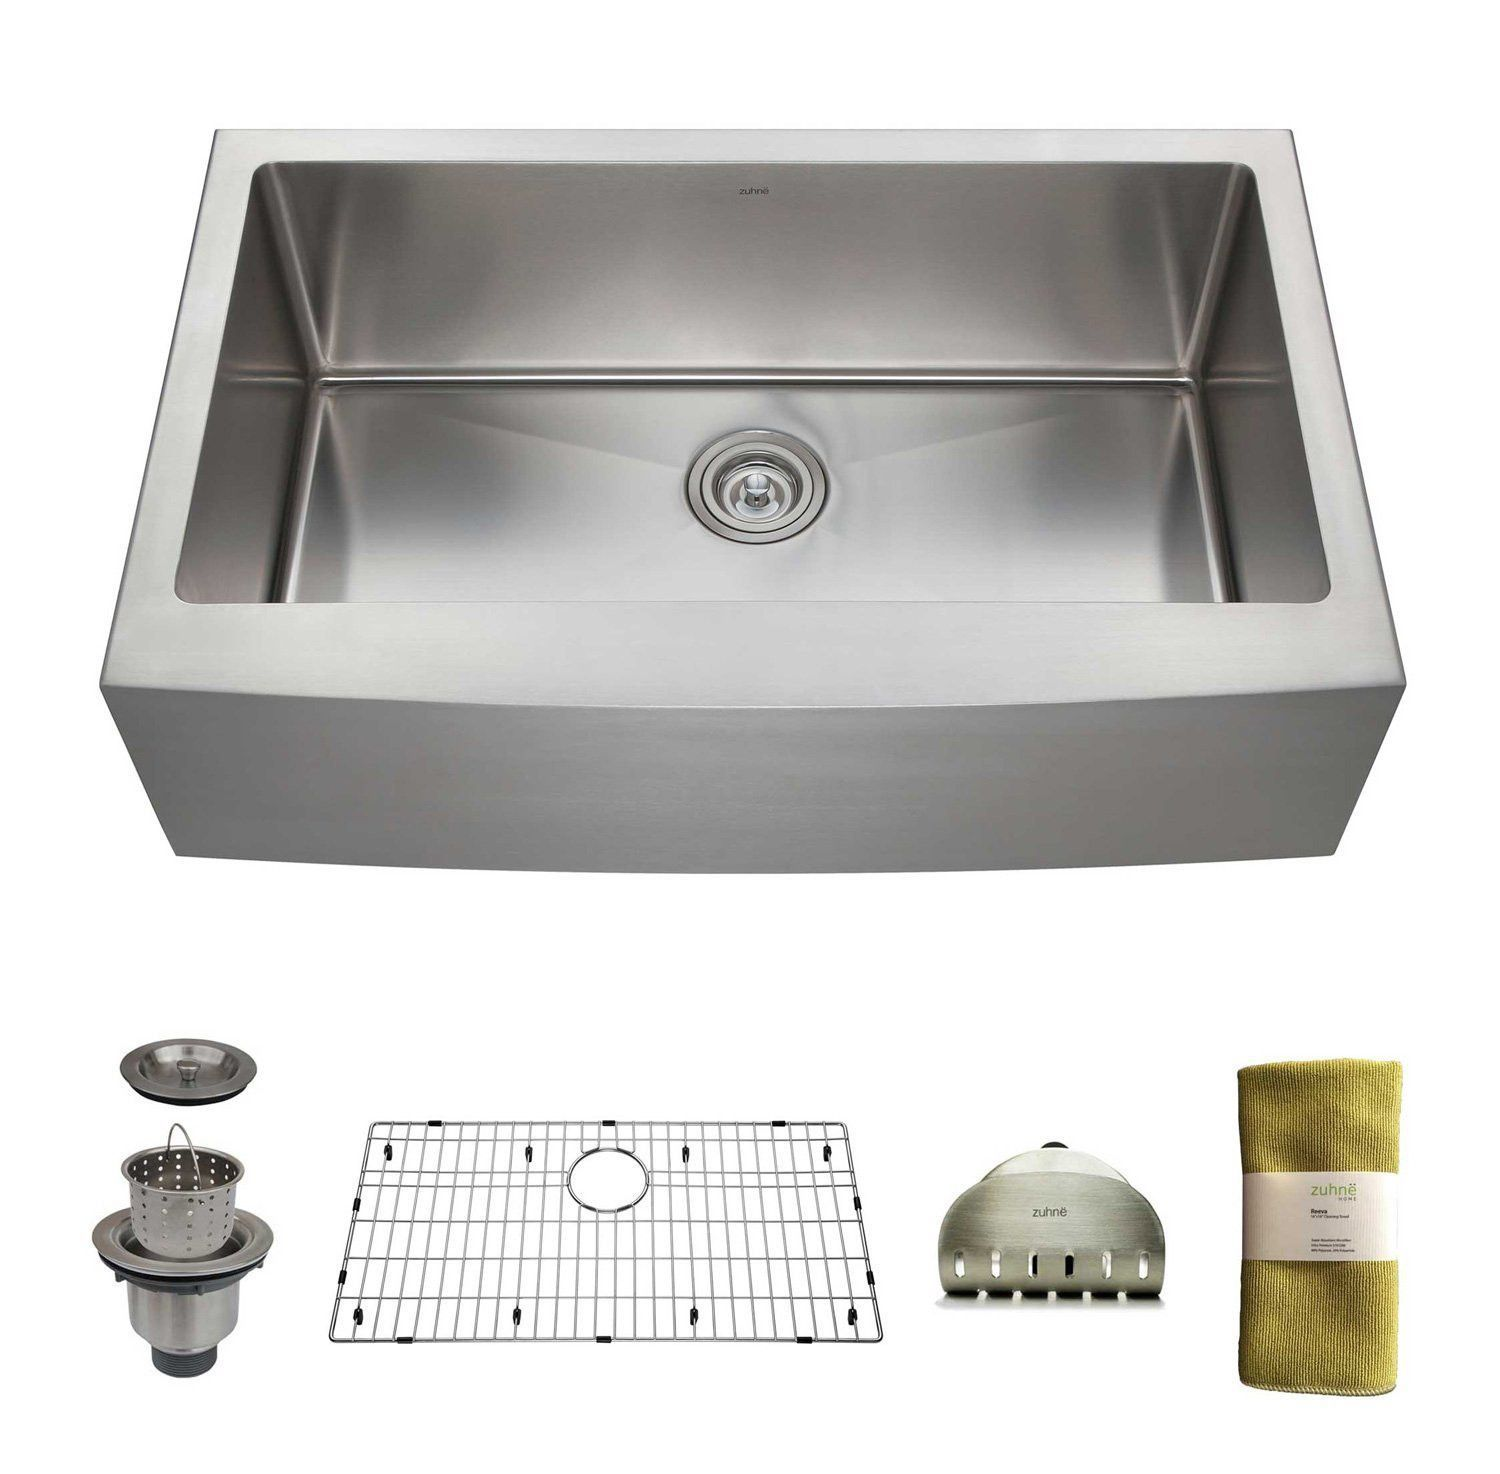 Zuhne 33 Inch Farmhouse Apron Deep Single Bowl 16 Gauge Stainless Steel Luxury Kitchen Sink Stainless Steel Kitchen Sink Stainless Kitchen